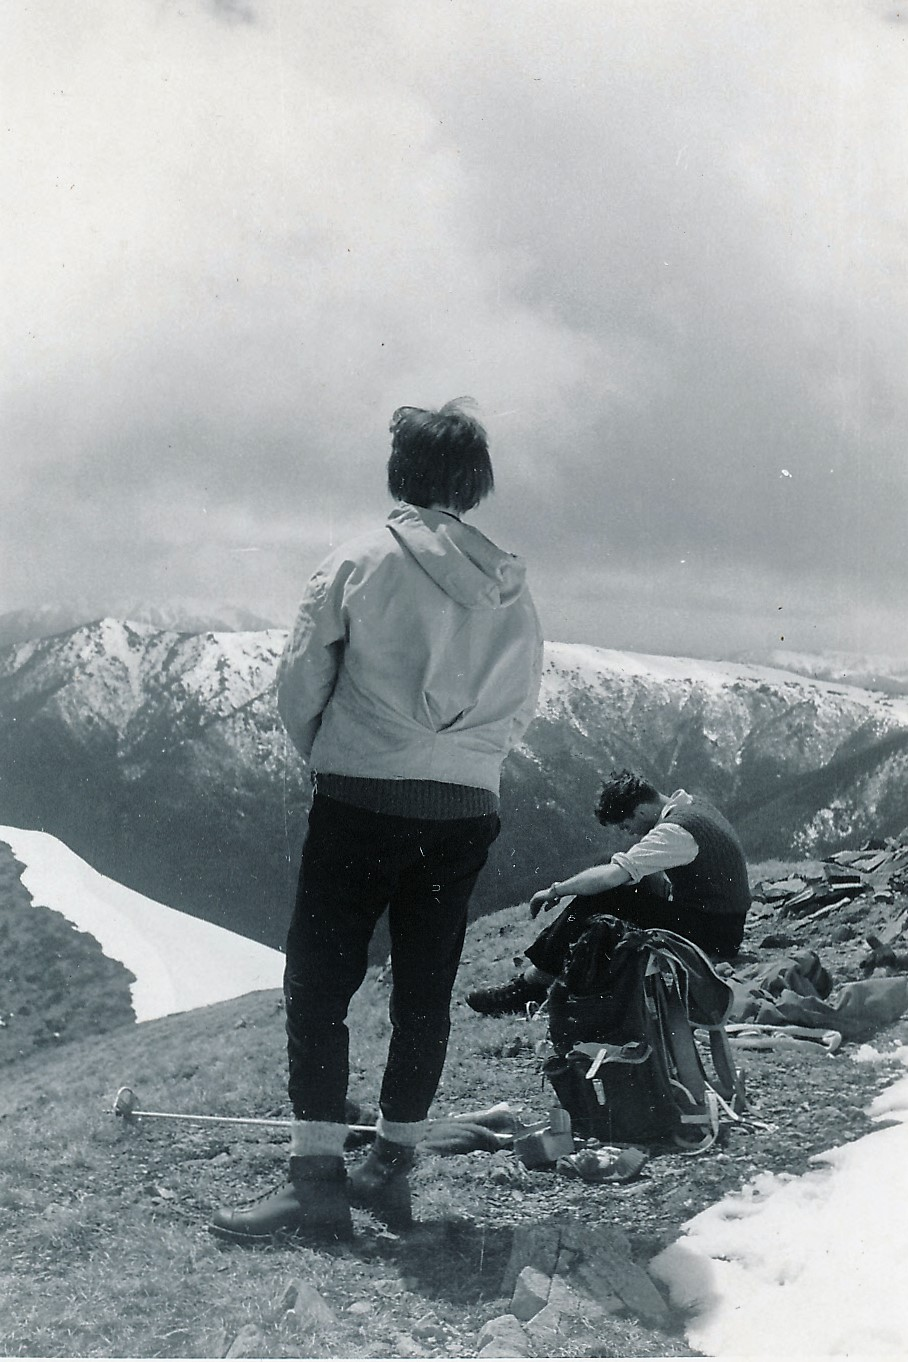 Hikers on Feathertop, spring 1962. © Margaret King. Used with permission